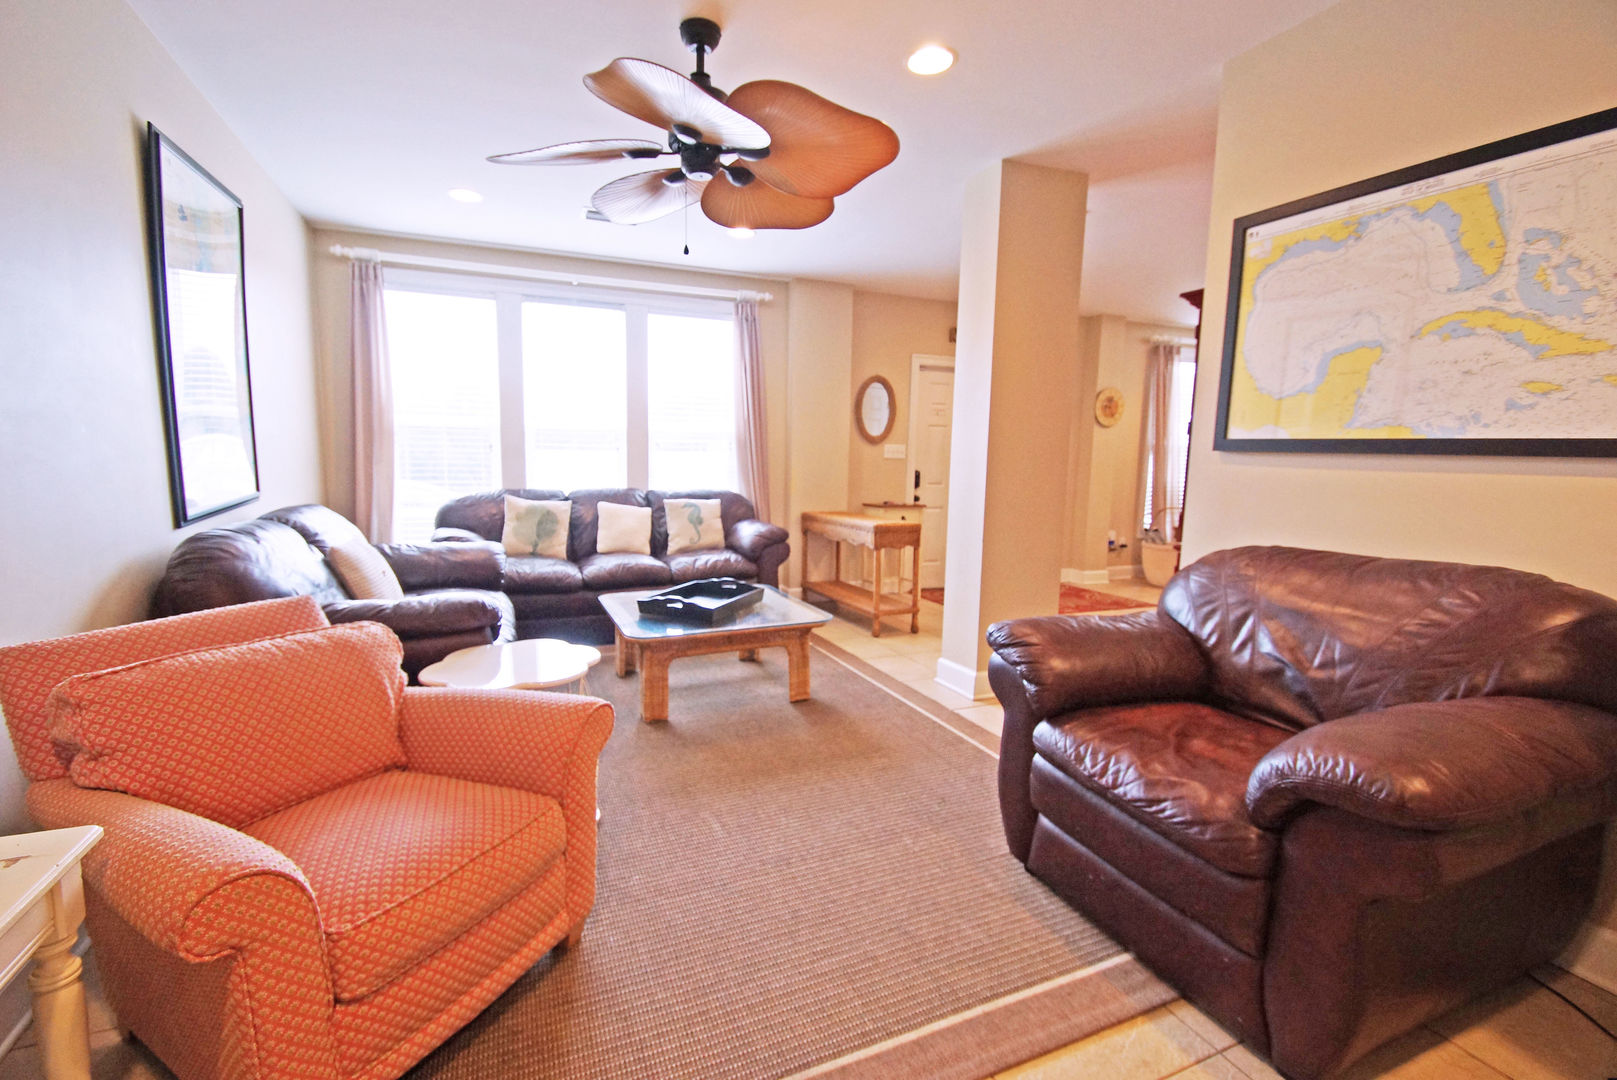 Arm Chairs, Sofa Table, Sofas, Coffee Table, and Ceiling Fan.